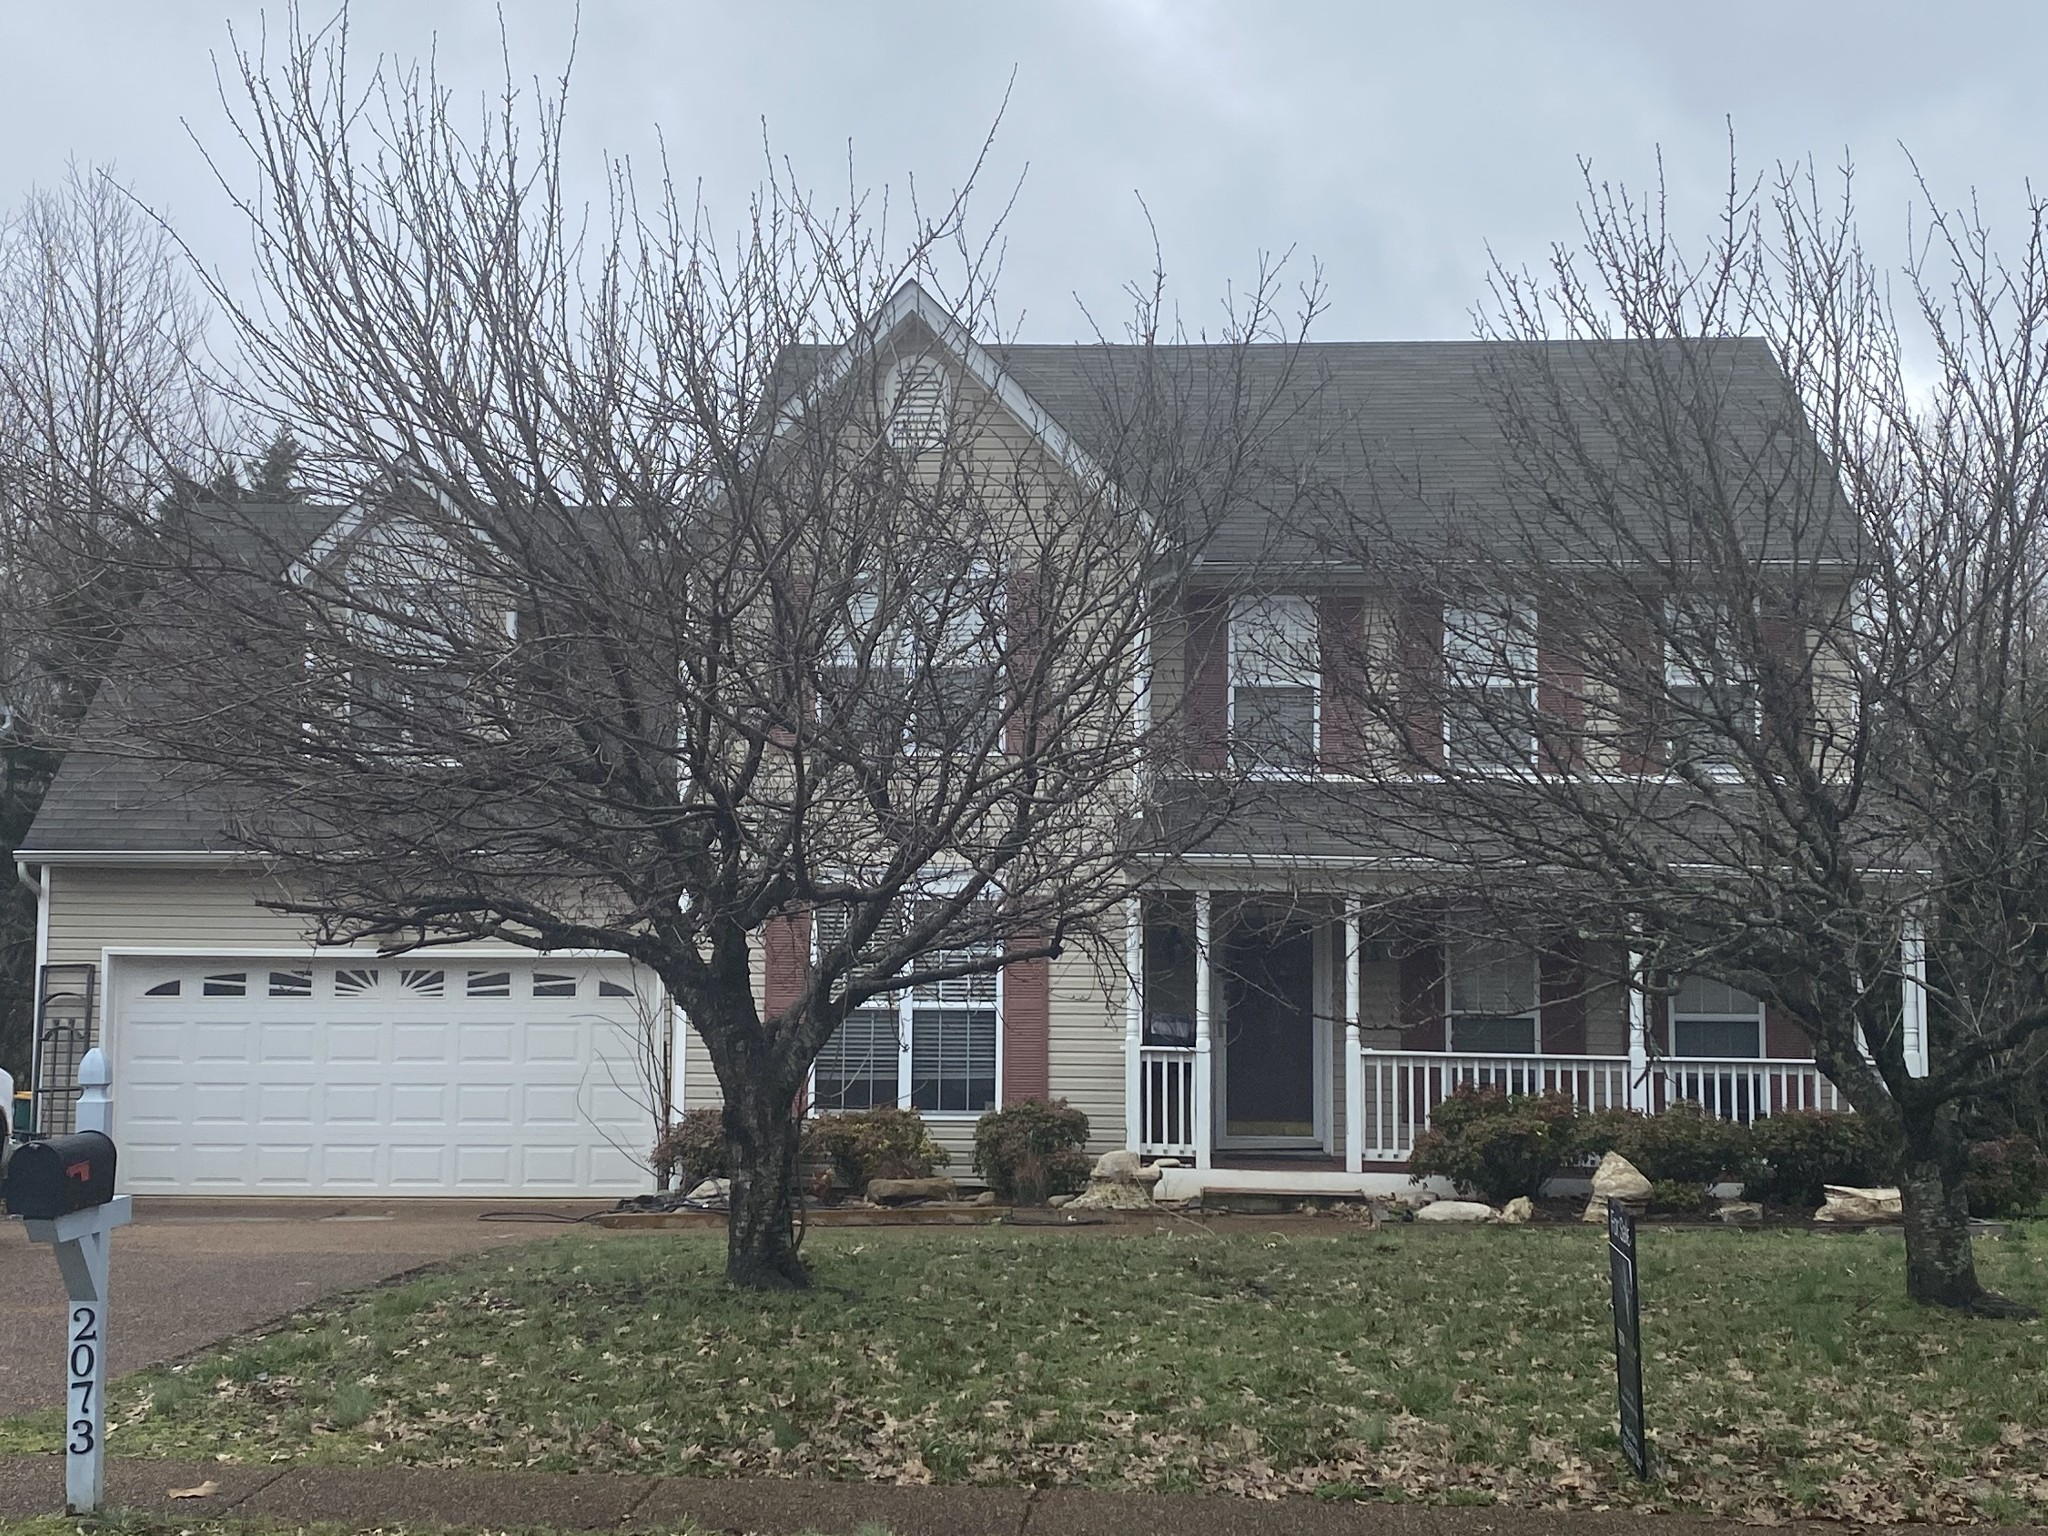 2073 Prescott Way, Spring Hill in Williamson County, T County, TN 37174 Home for Sale